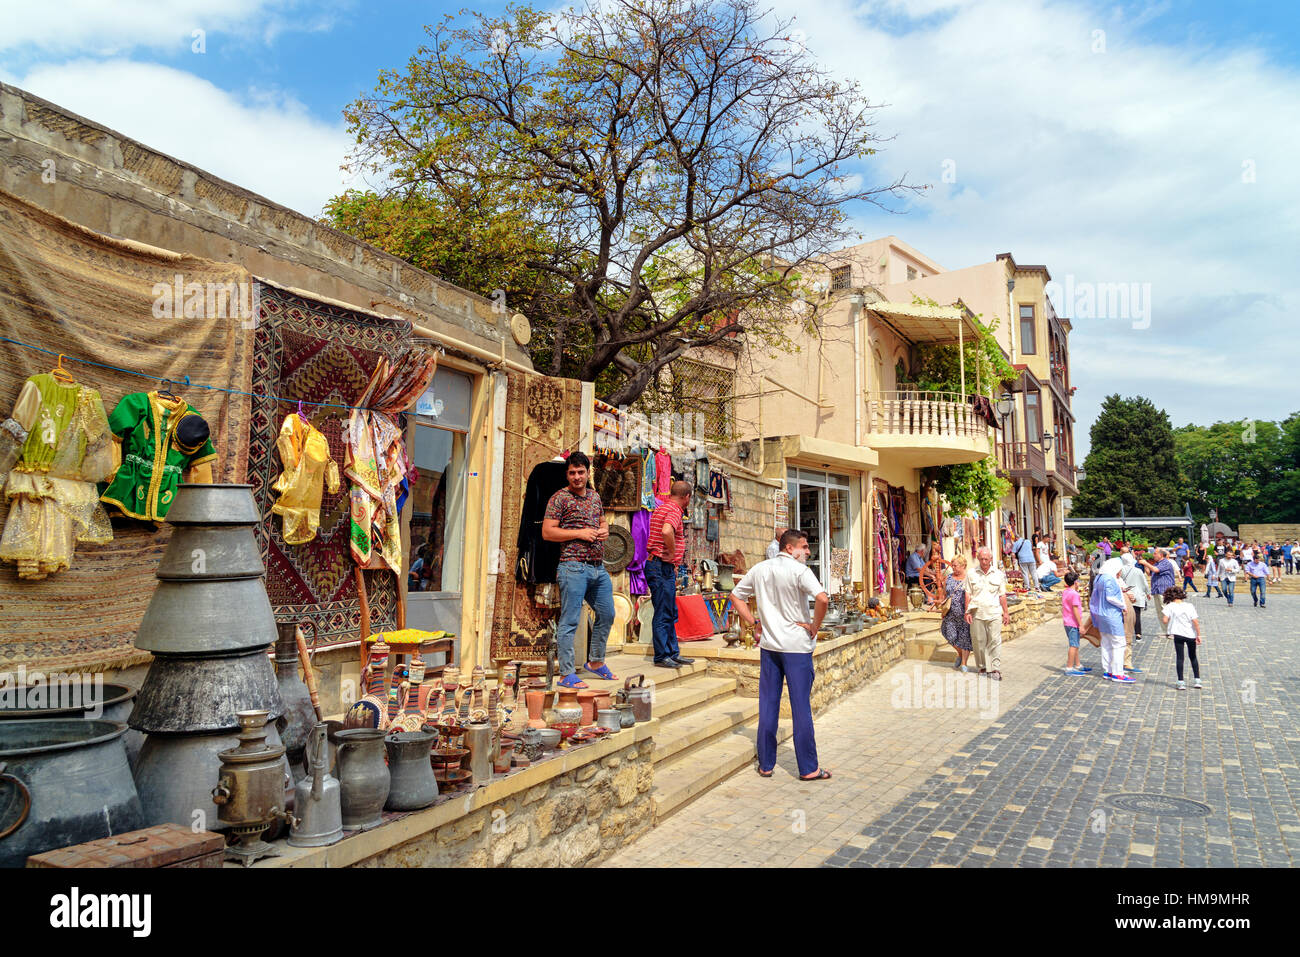 Baku, Azerbaijan - September 10, 2016: Souvenir and antique shops in Old city, Icheri Sheher is the historical core - Stock Image